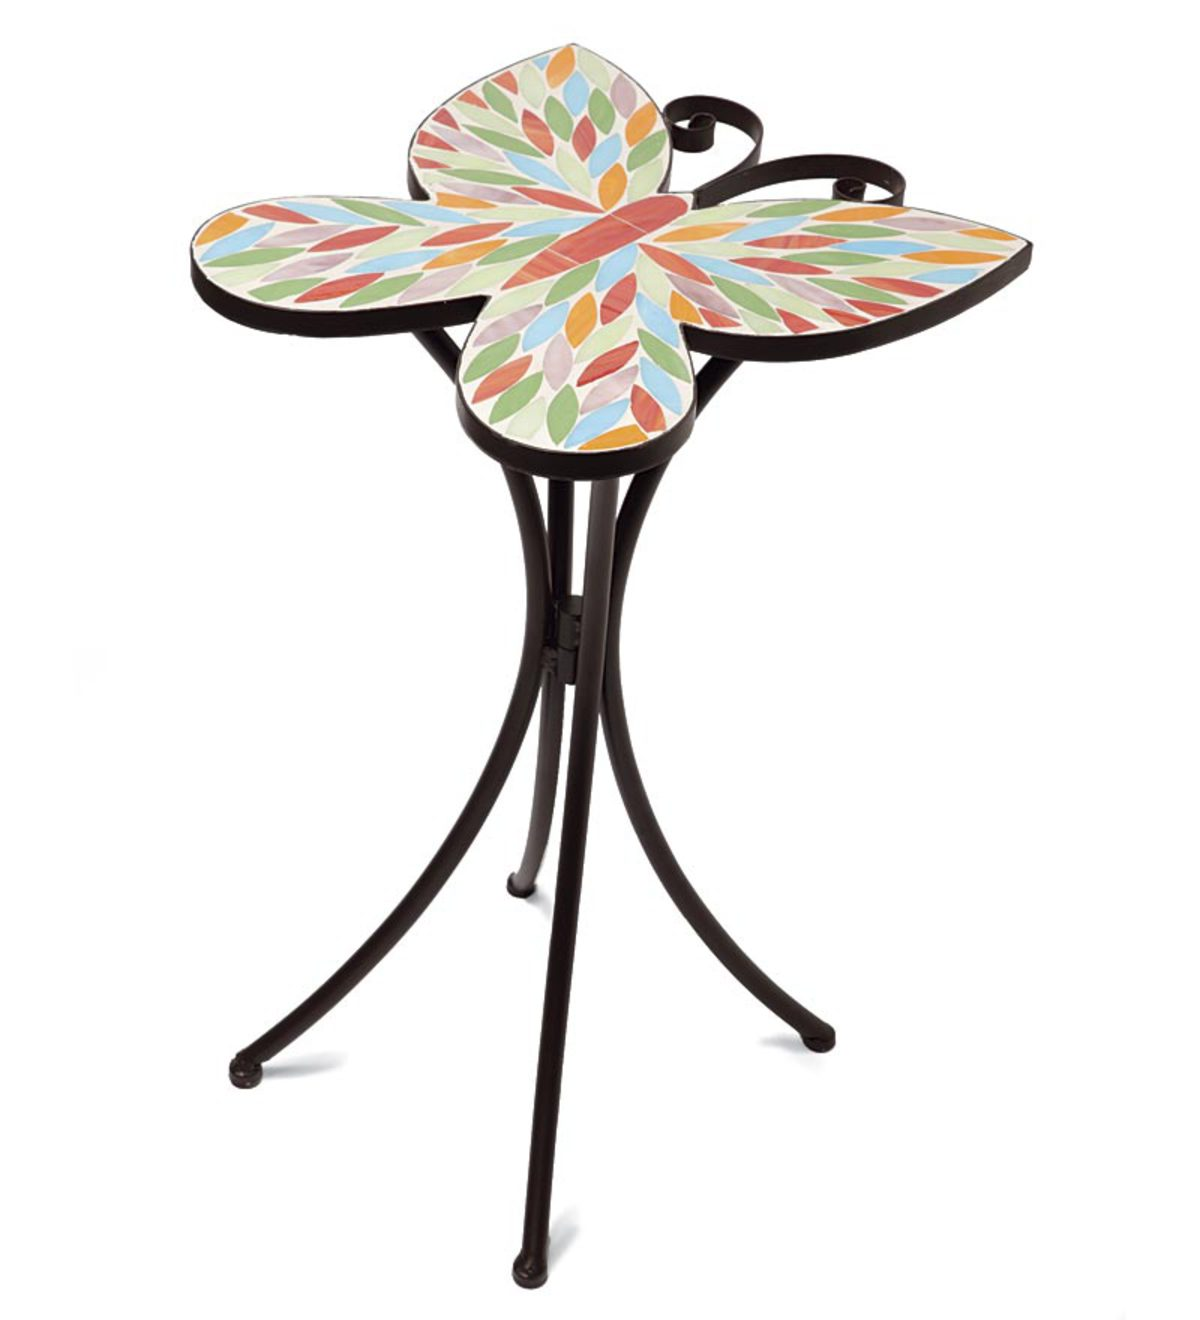 butterfly and flower stained glass mosaic accent table plowhearth tall breakfast teal kitchen decor skinny side wine colored tablecloth modern linens herman miller outdoor